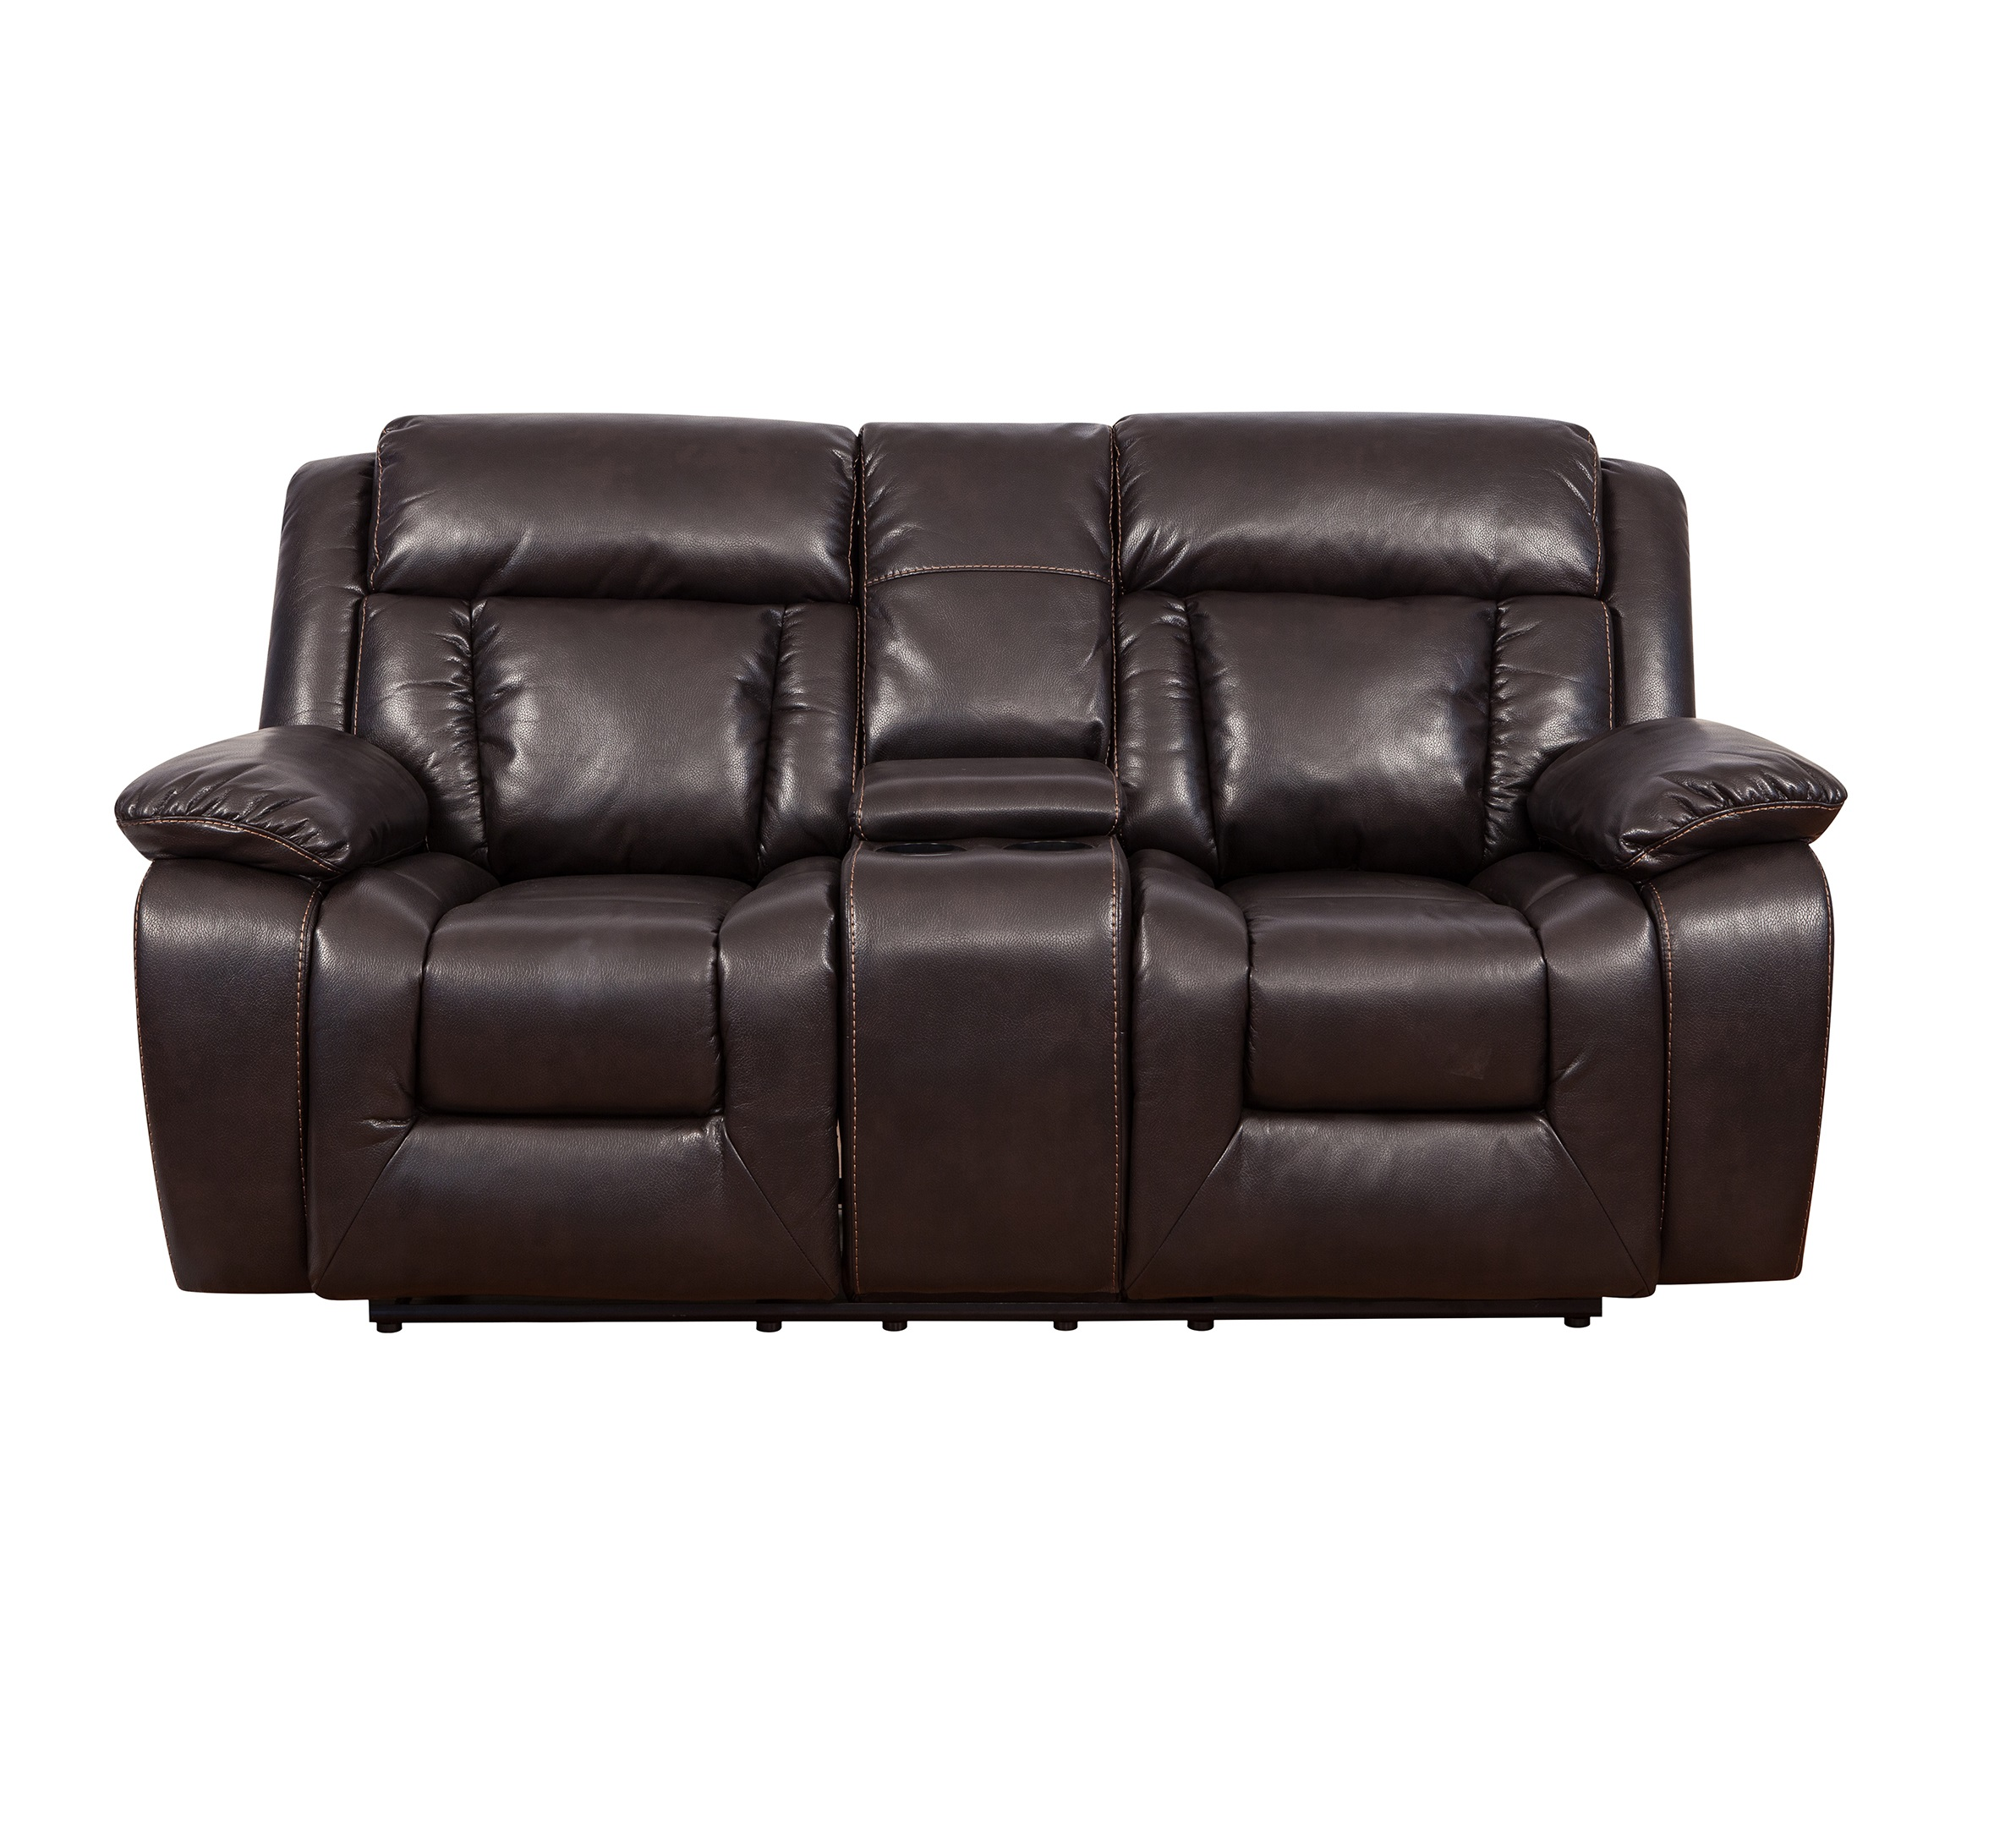 American style 2 seater modern leather loveseat with cup holder Featured Image